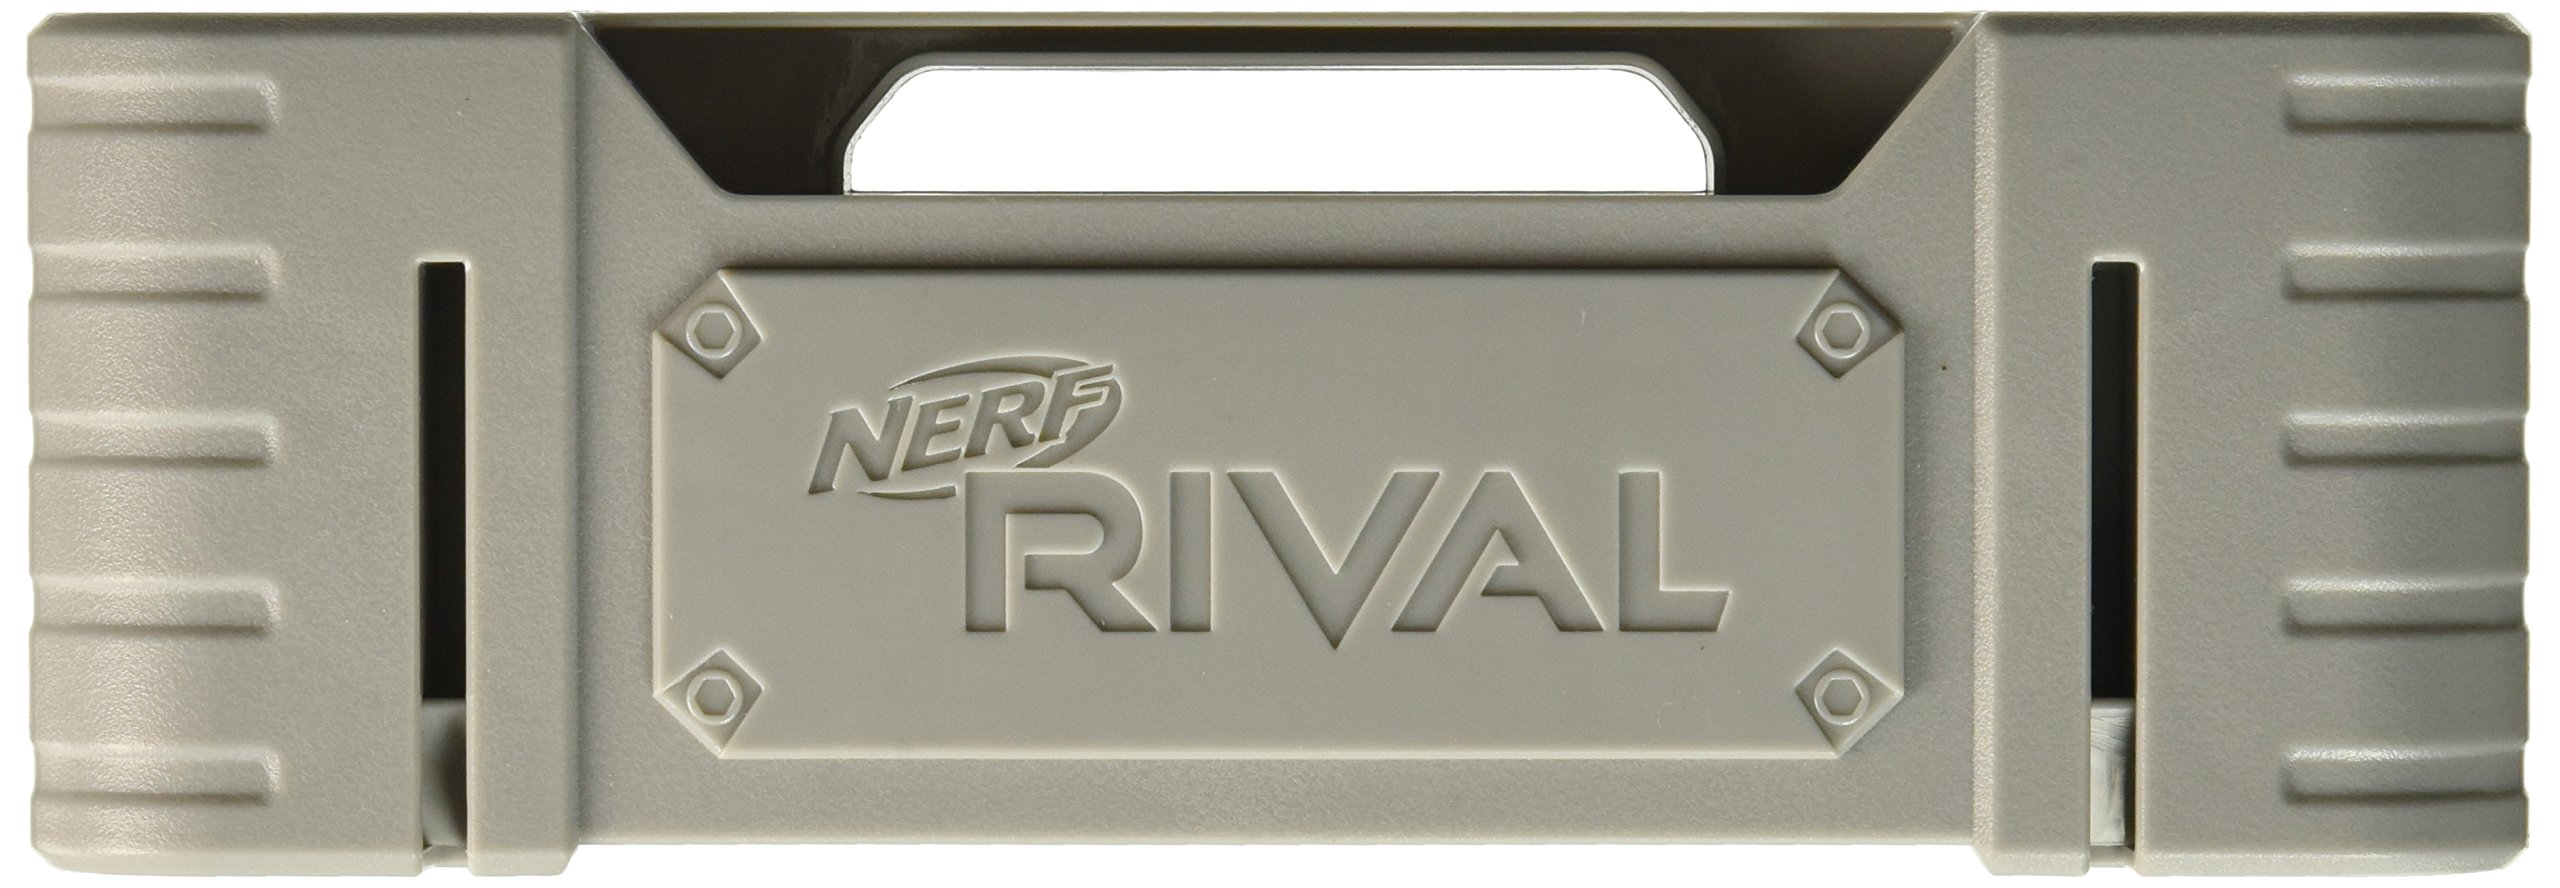 NERF Rival Rechargeable Battery Pack by NERF